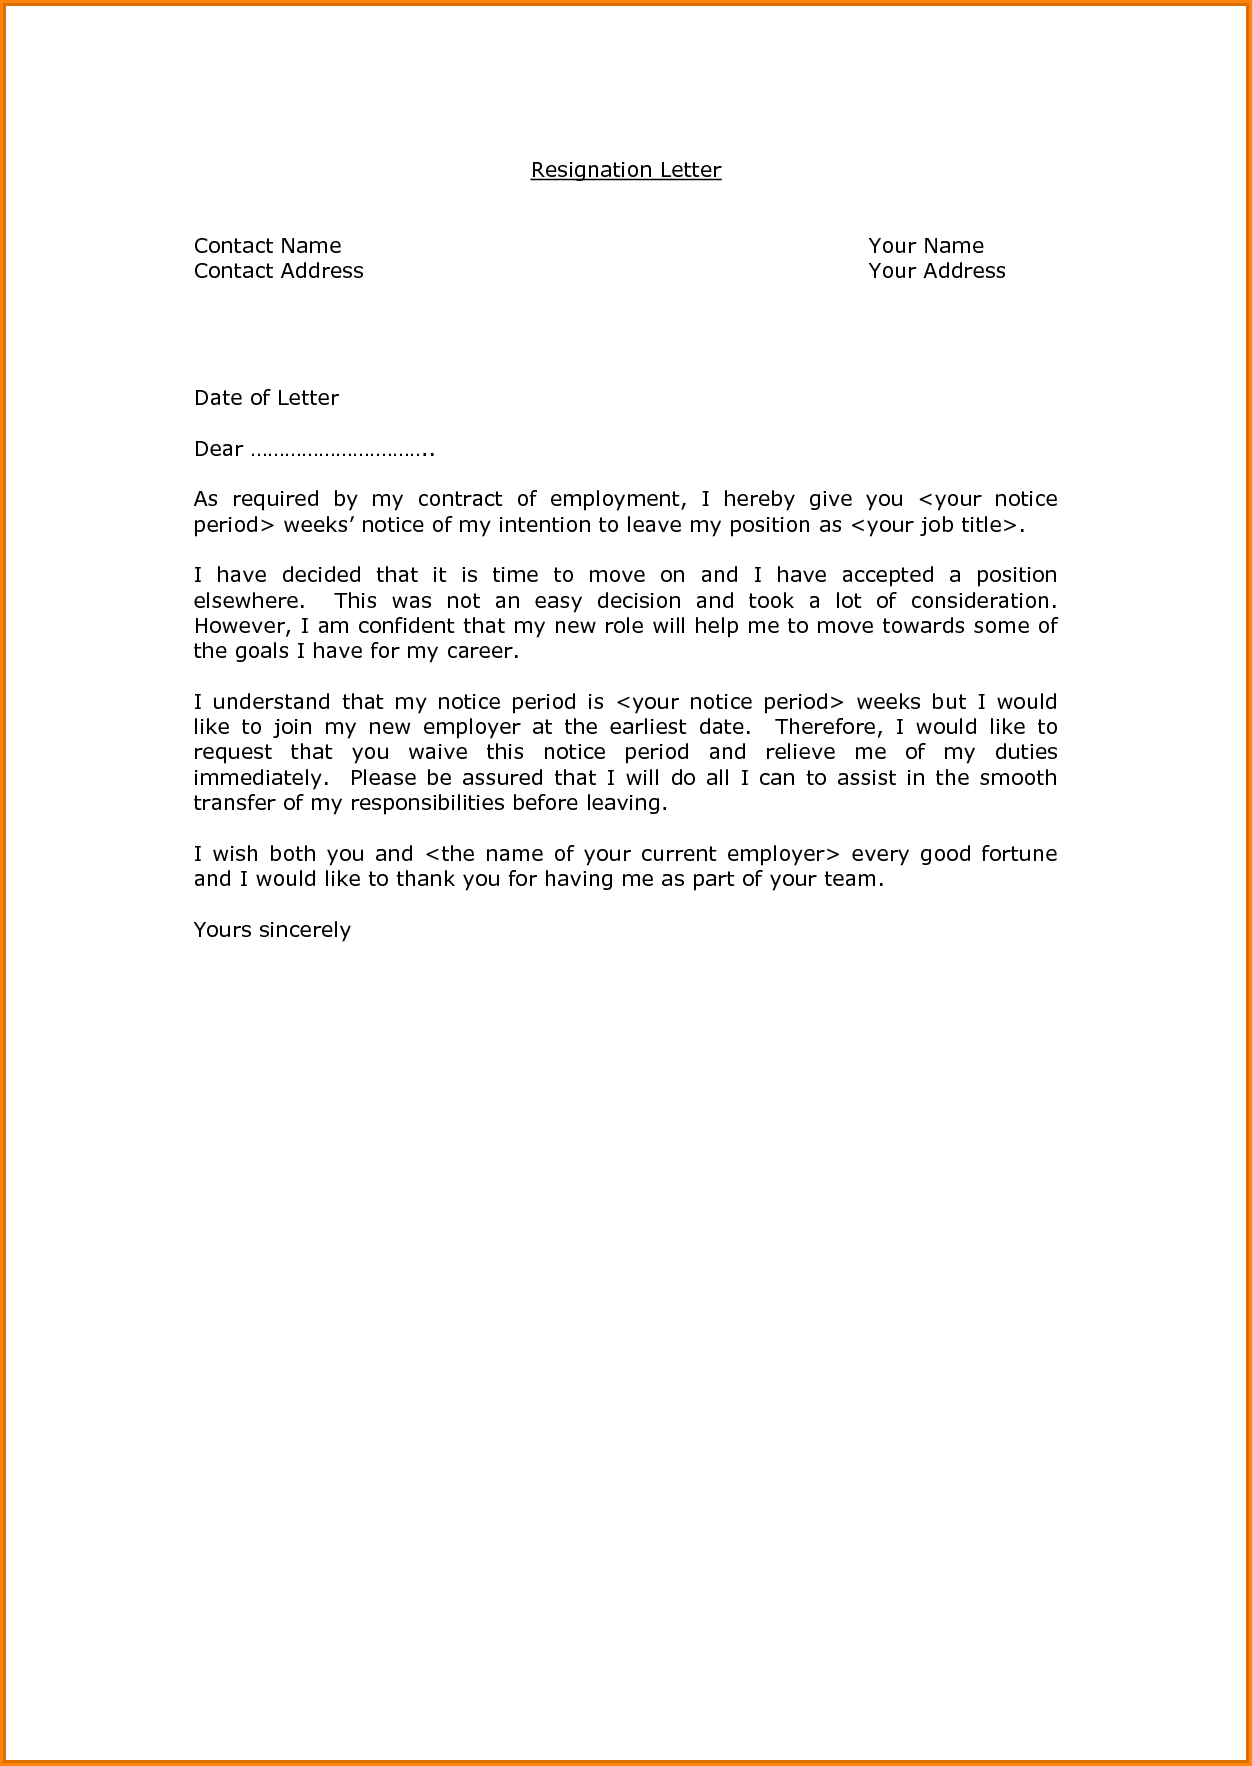 Formal Resignation Letter with Notice Period | employment